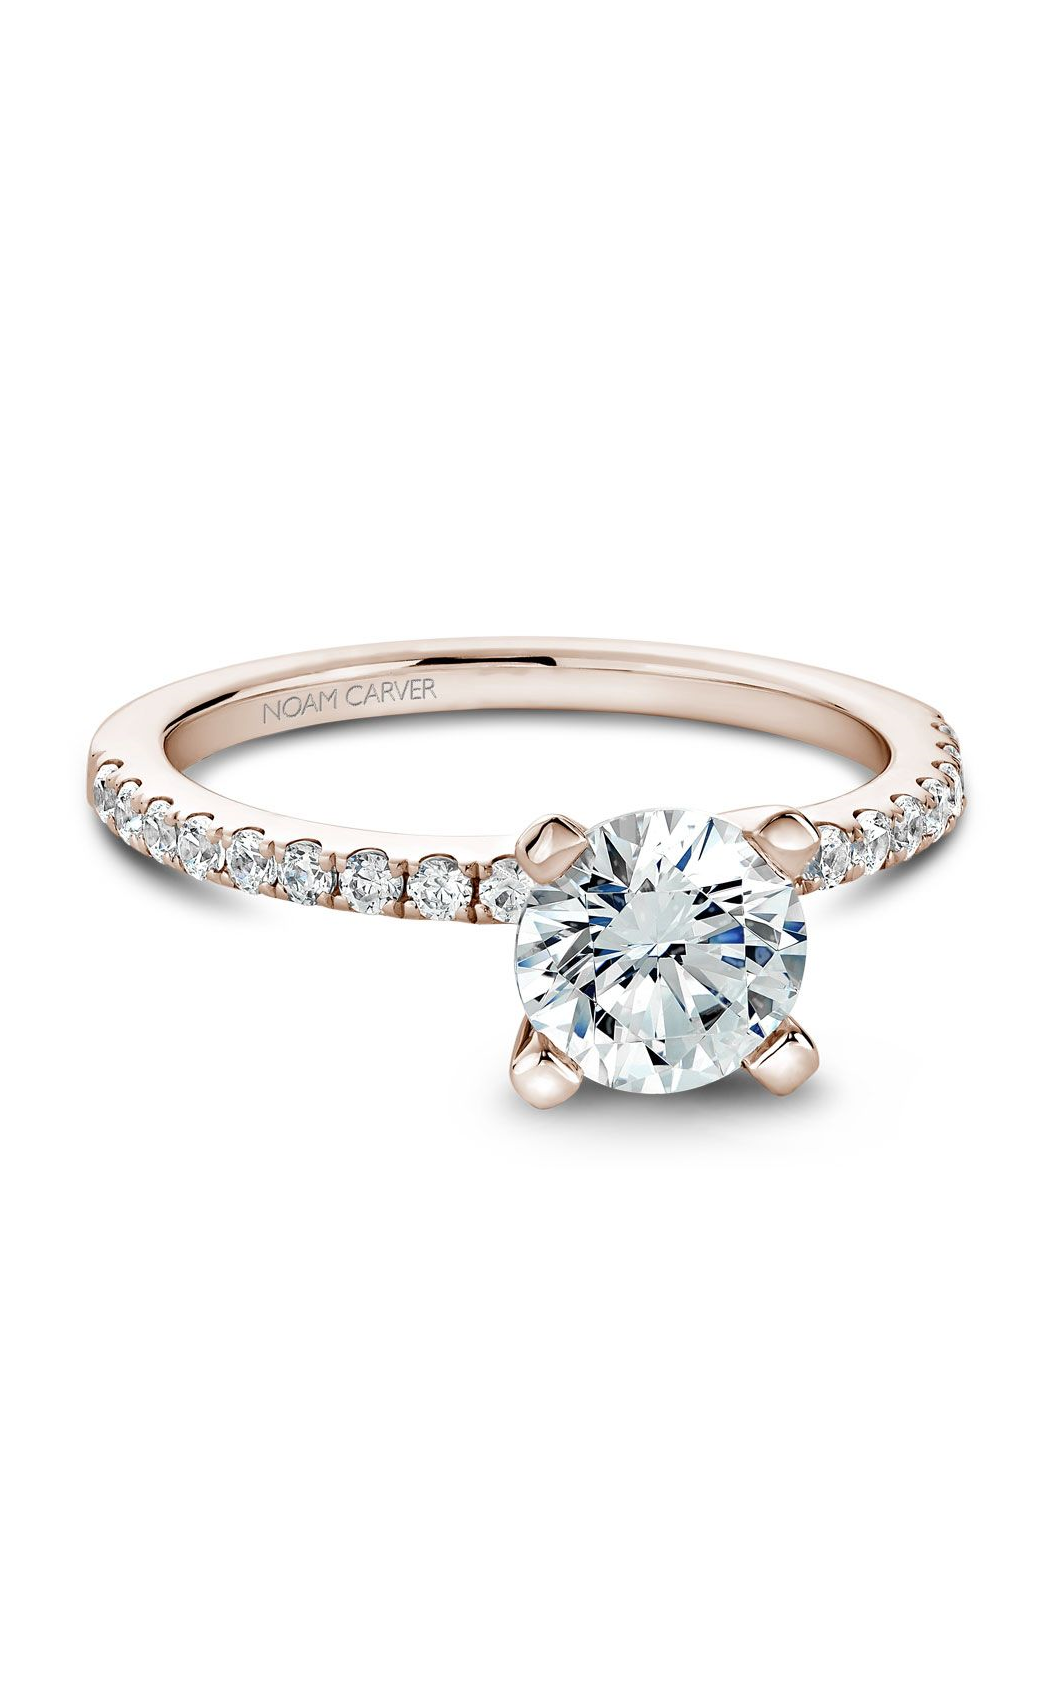 Noam Carver Solitaire Engagement Ring B017-01RM product image